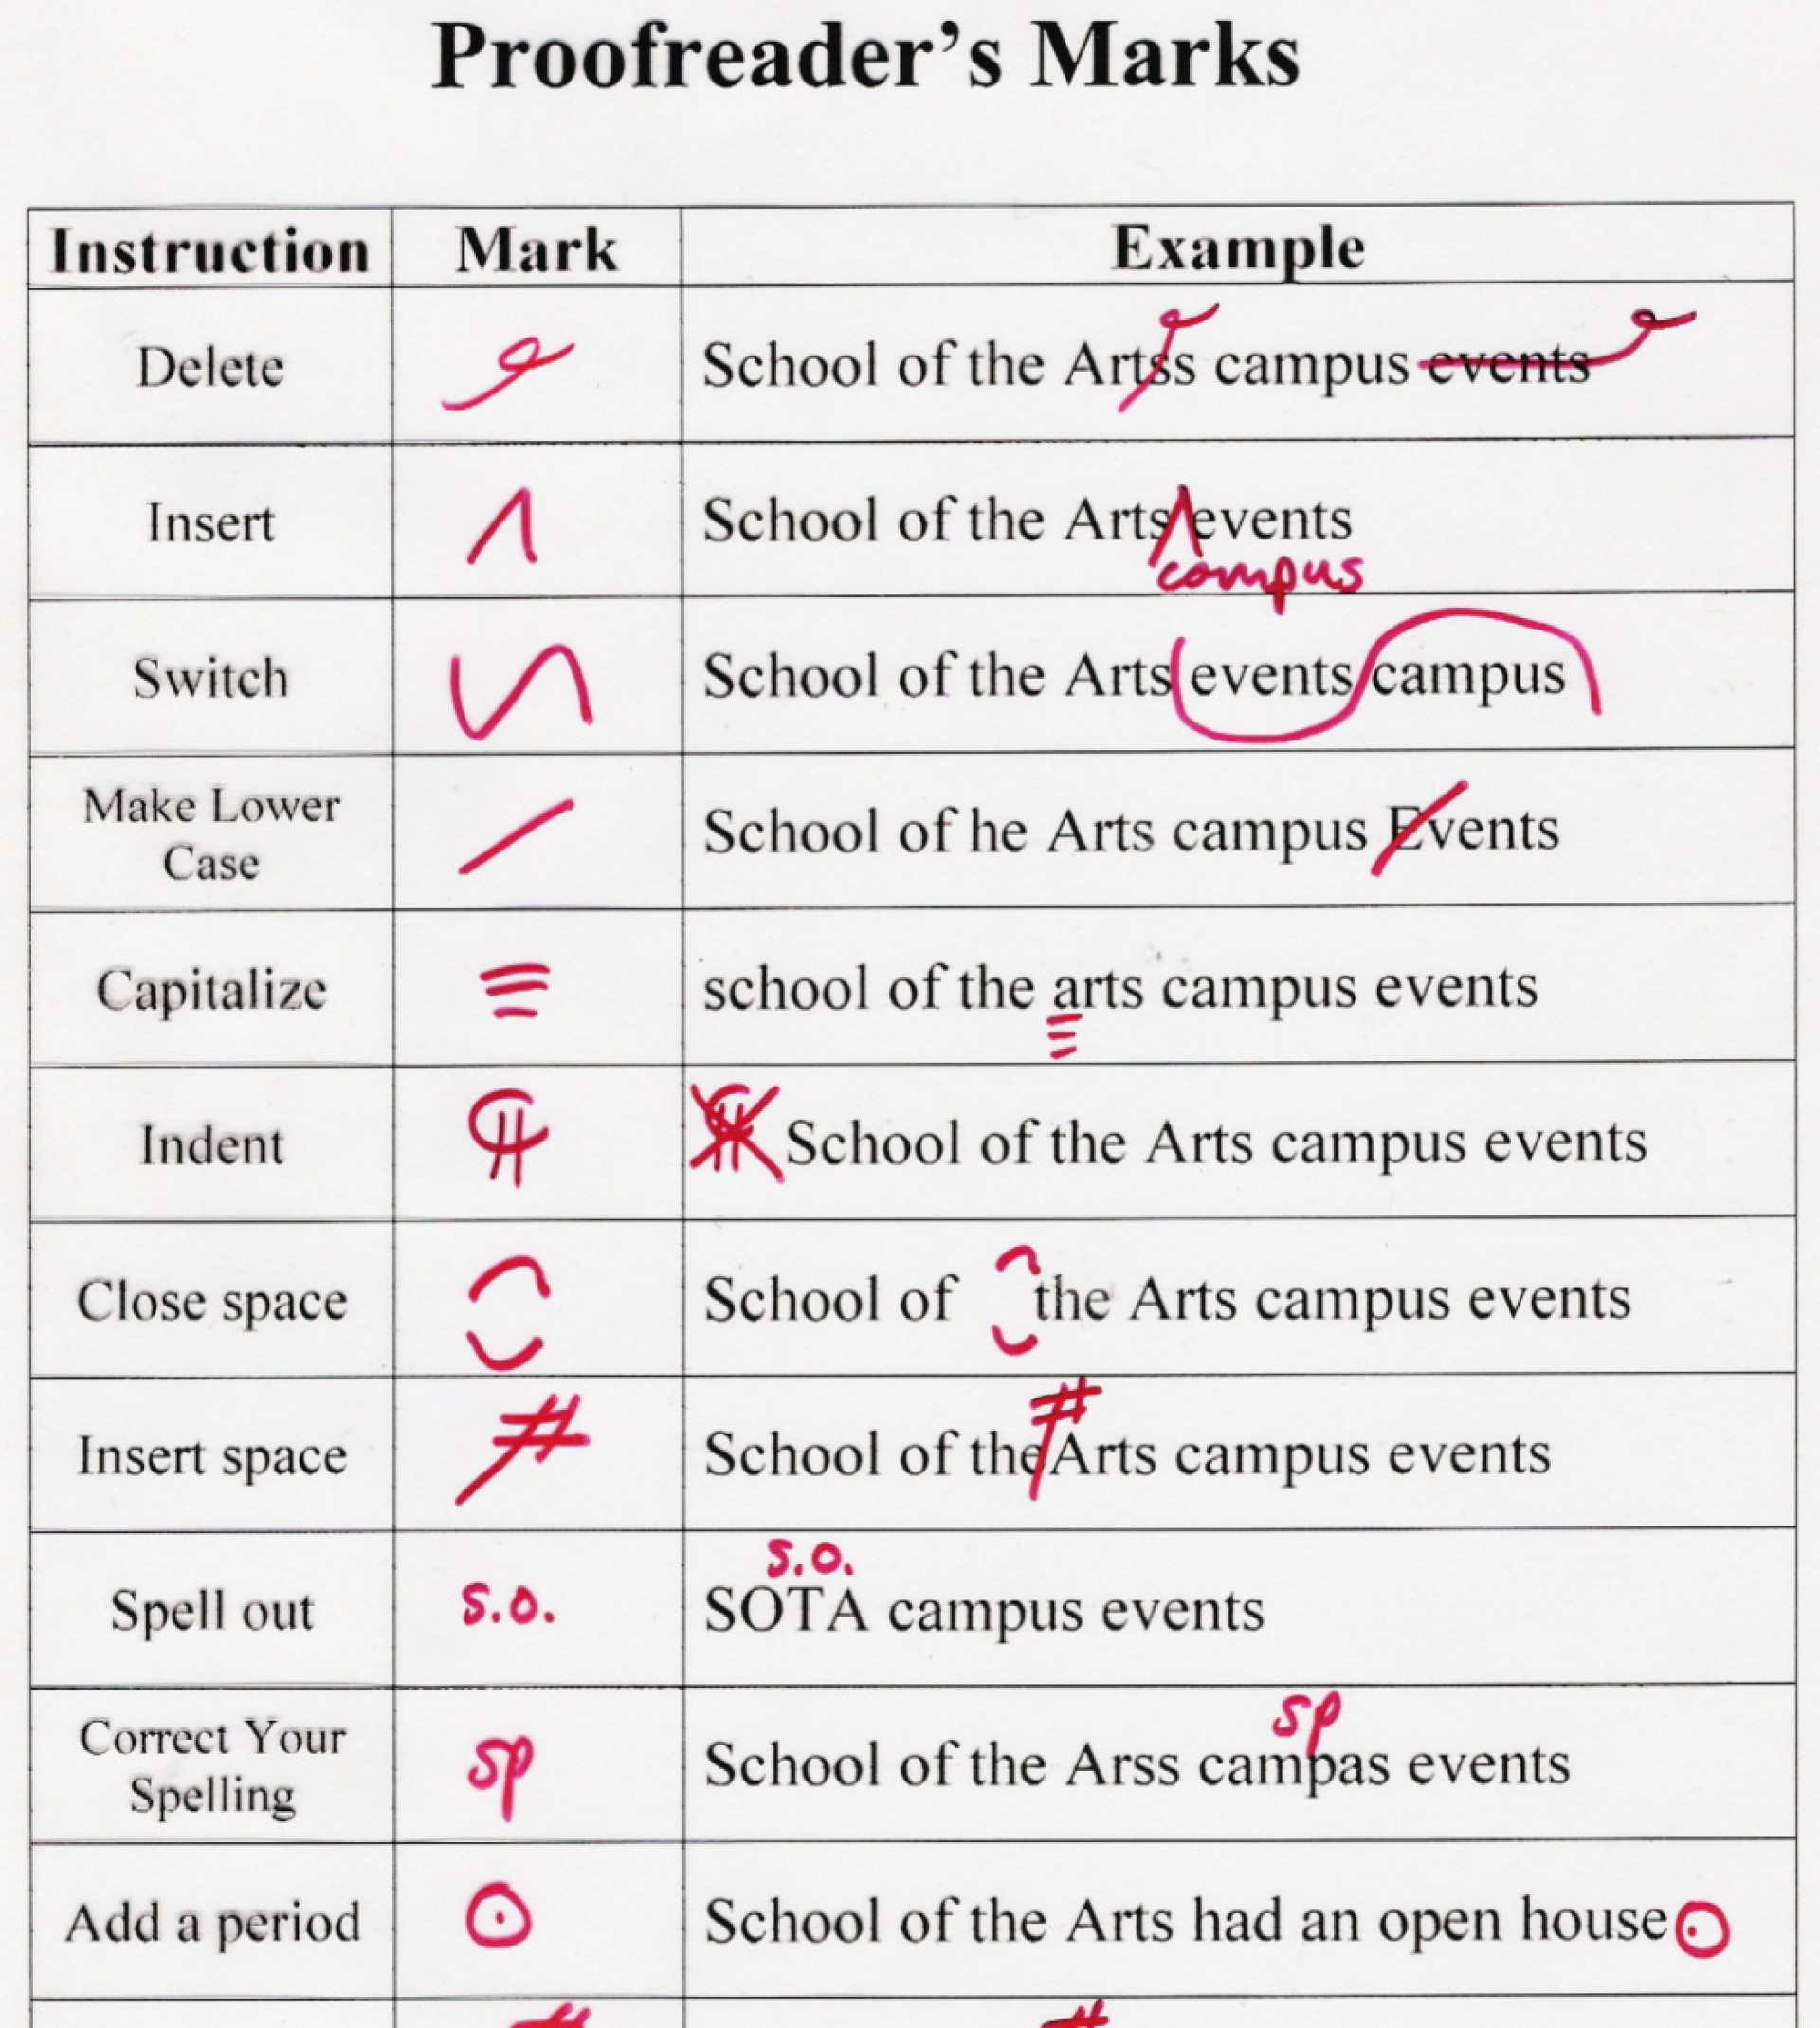 018 Essay Correction Symbols Grammar Check My Images About